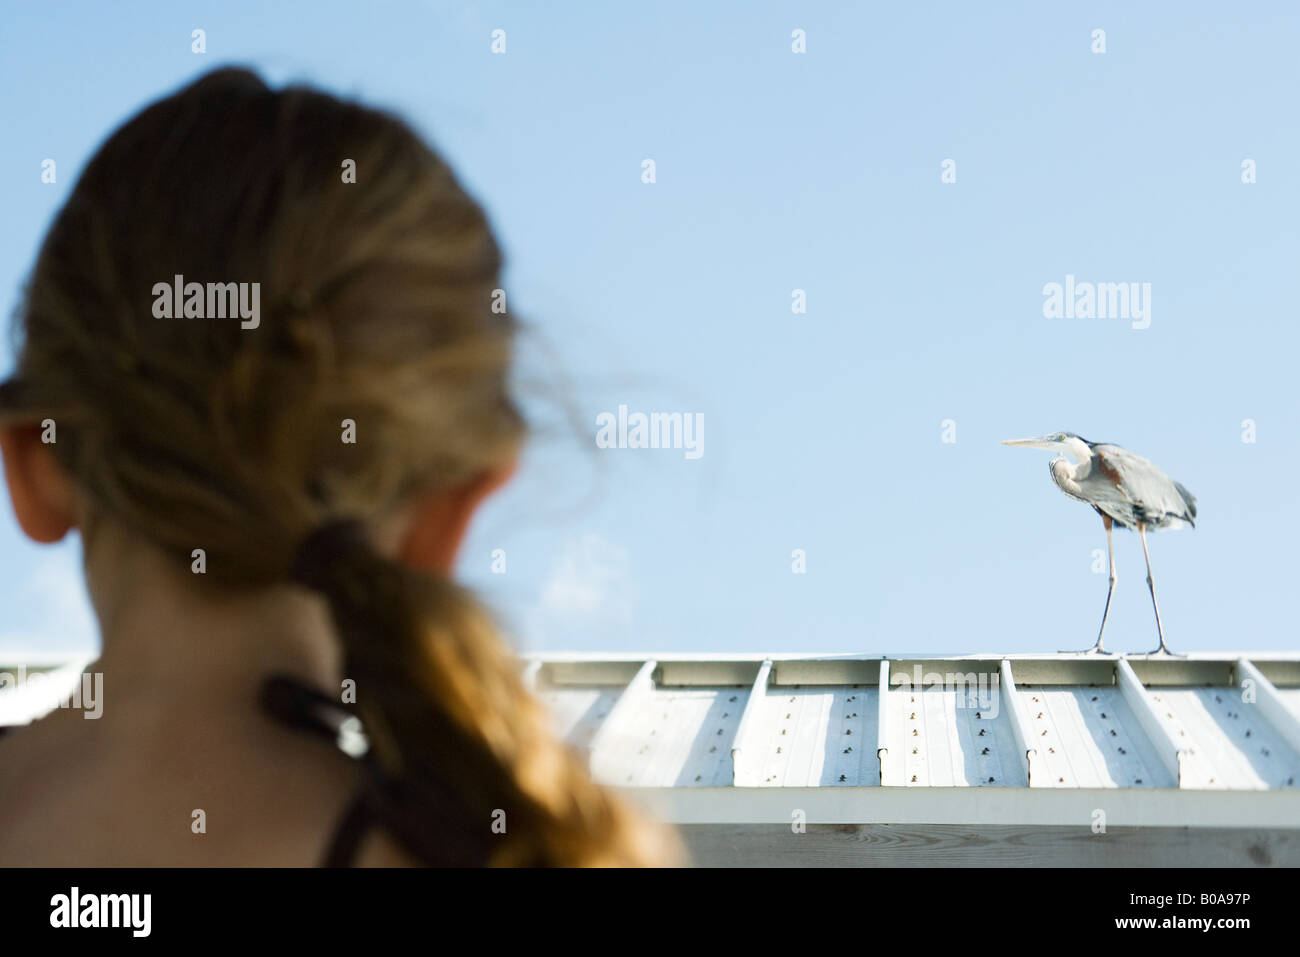 Little girl watching heron, over the shoulder view, focus on background - Stock Image